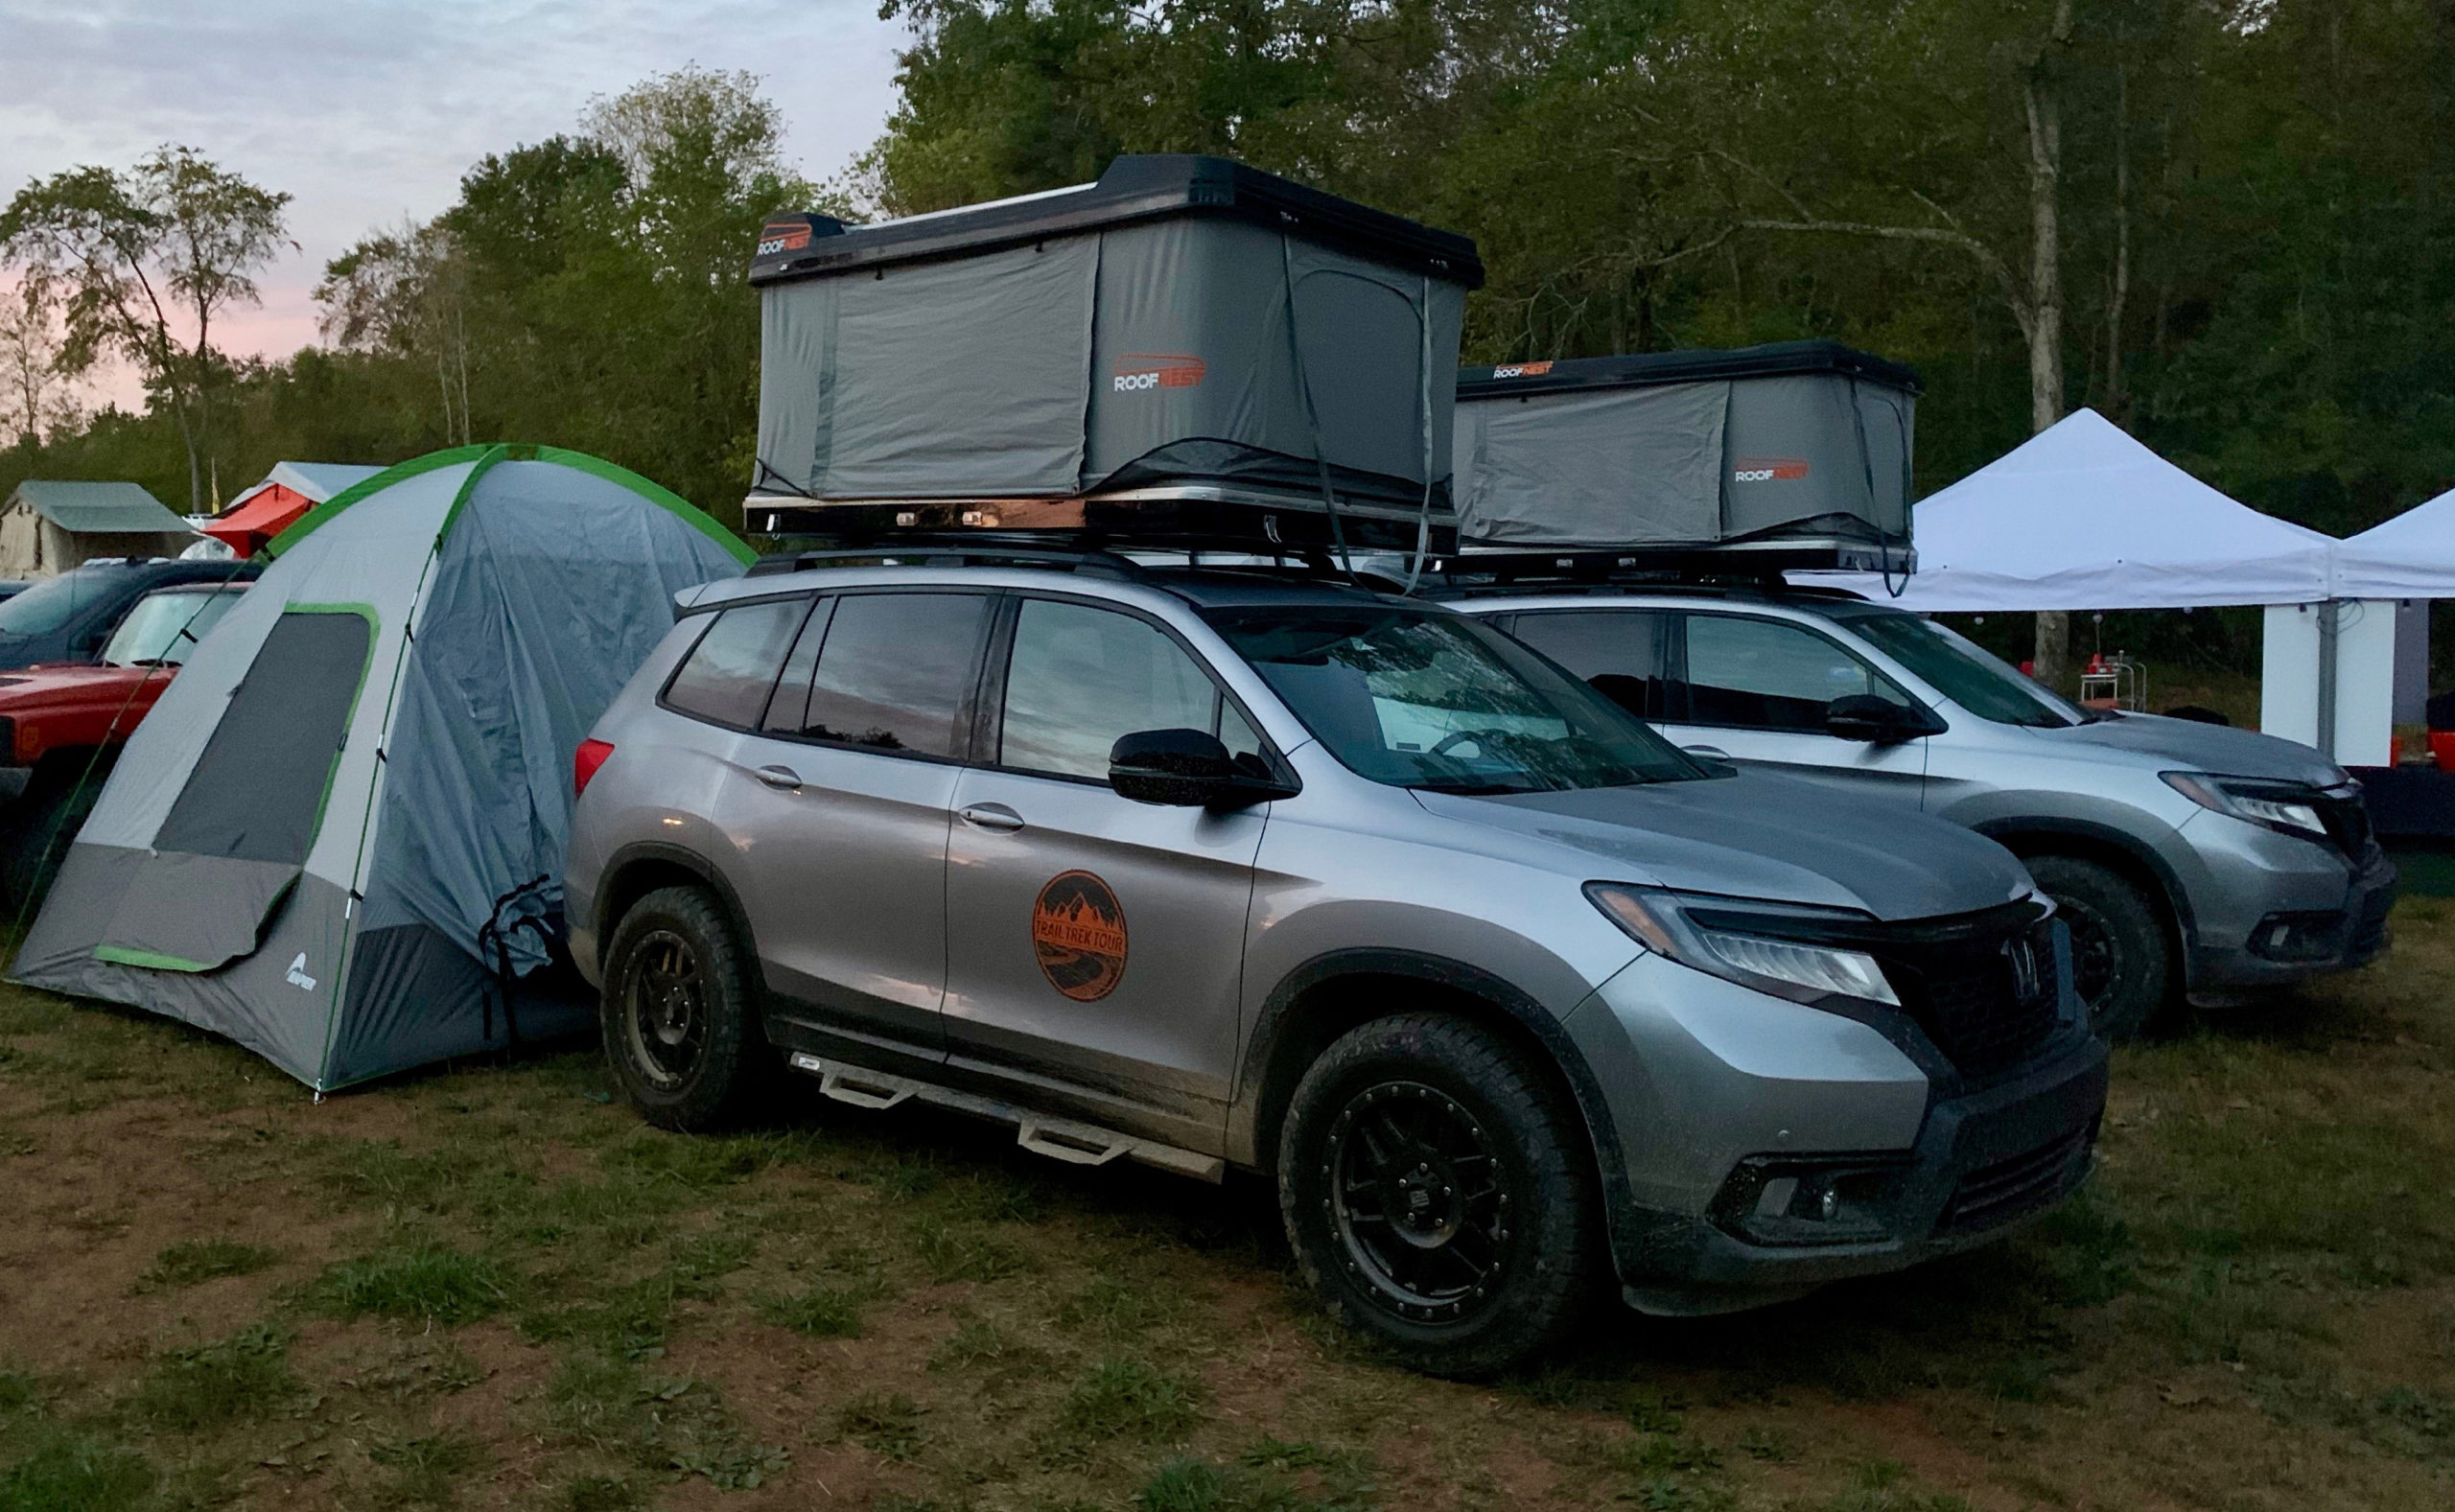 WTOP : Social distance and see a whole new world by overlanding in your SUV